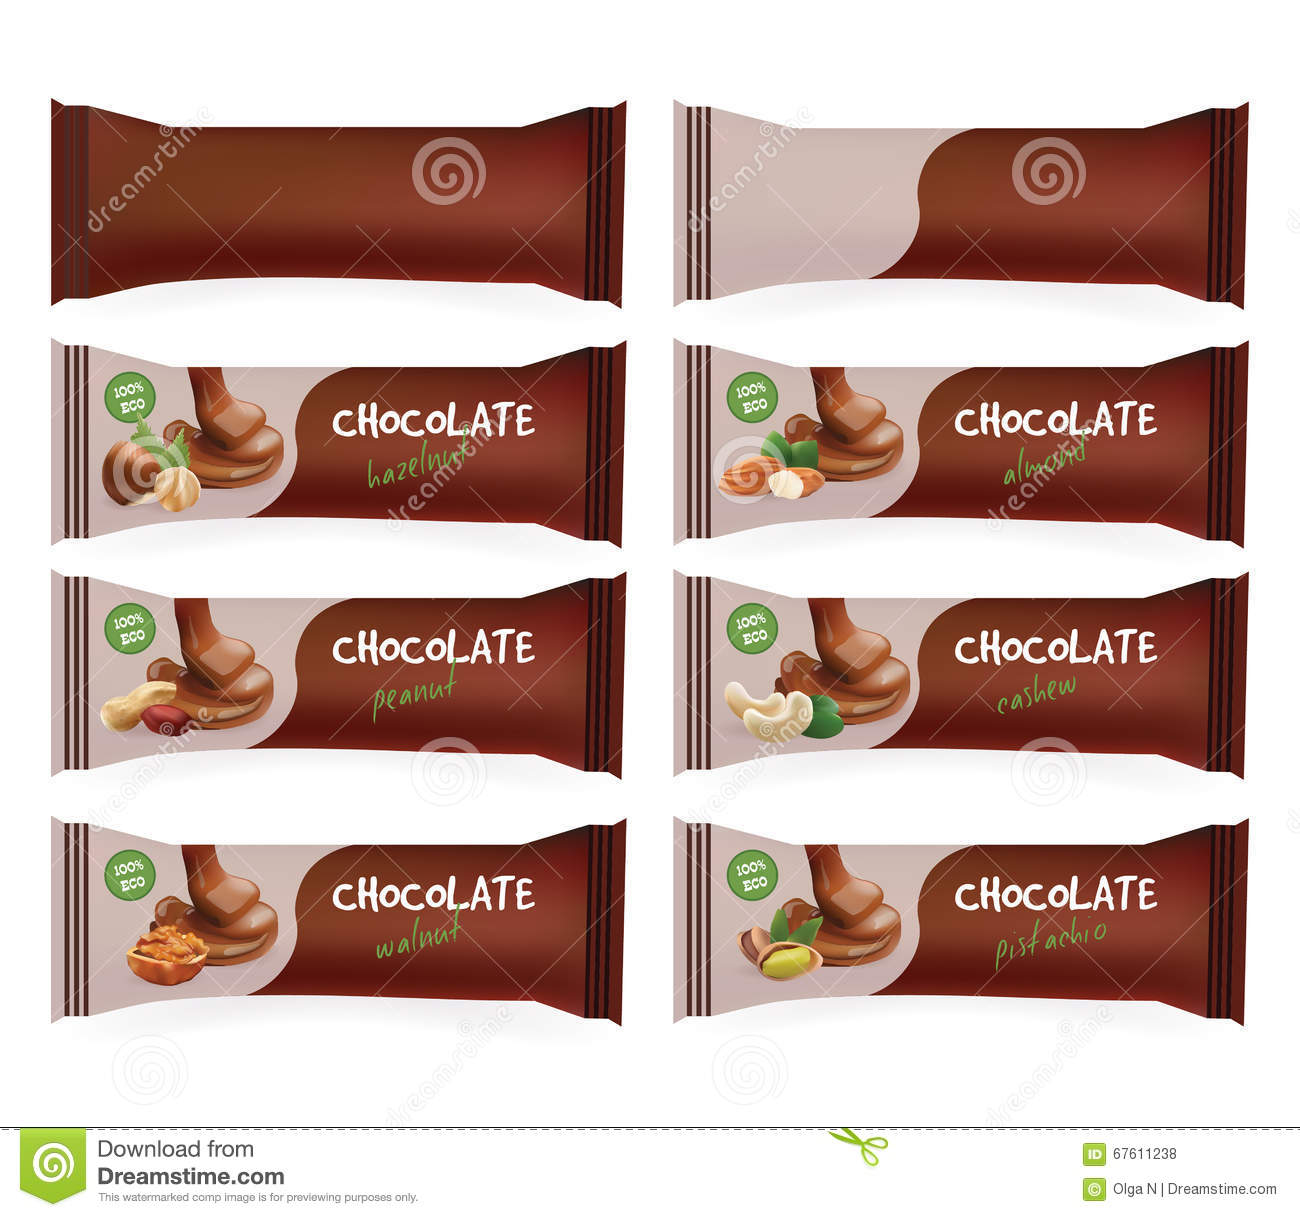 Blank Chocolate Bar Packaging Royalty Free Stock Image - Image ...